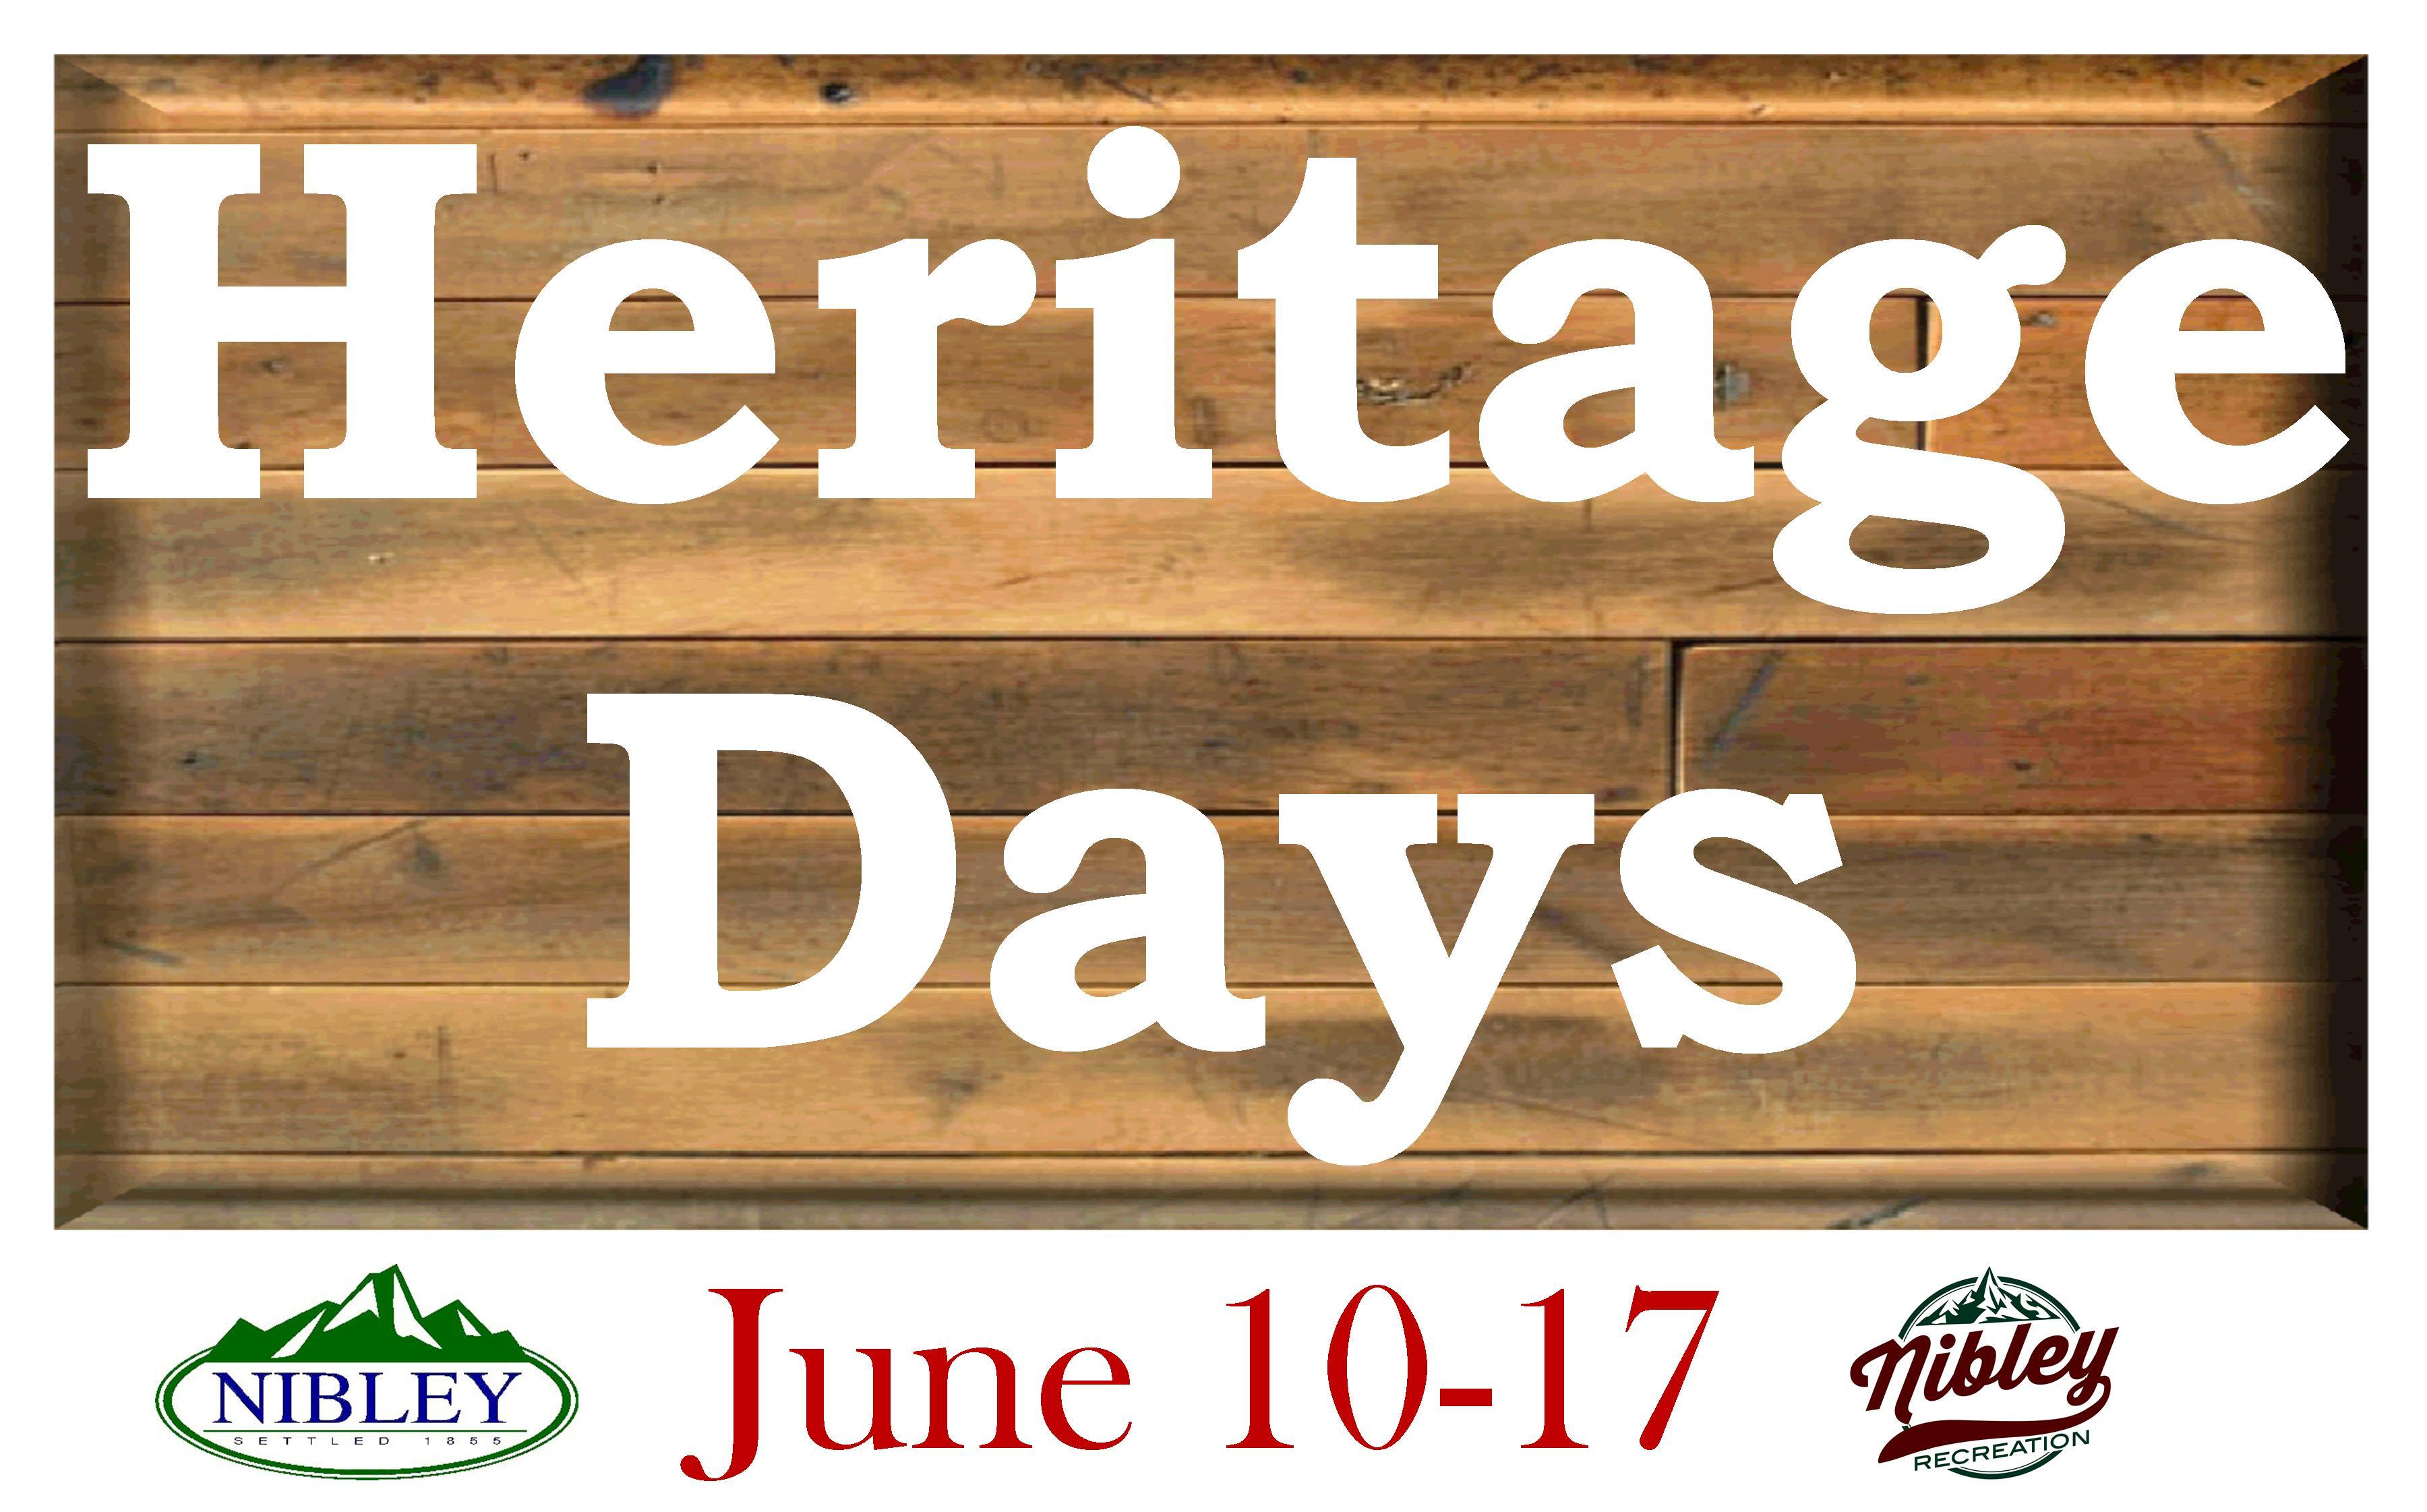 Heritage Days Sign Image